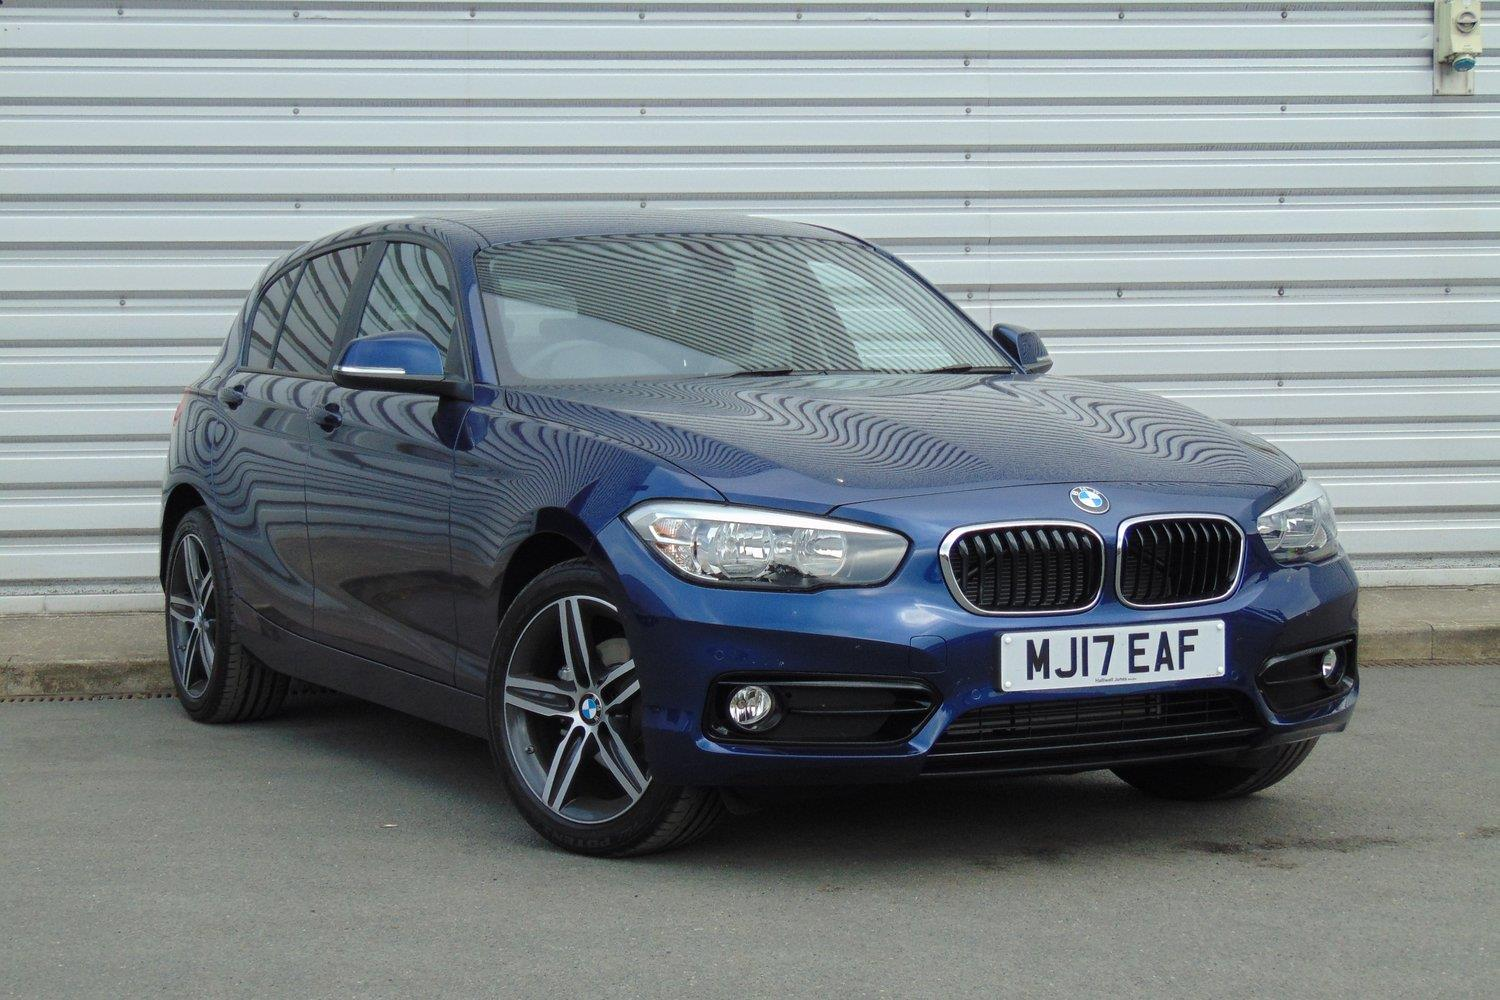 BMW 1 Series 5-door Sports Hatch MJ17EAF - Image 8